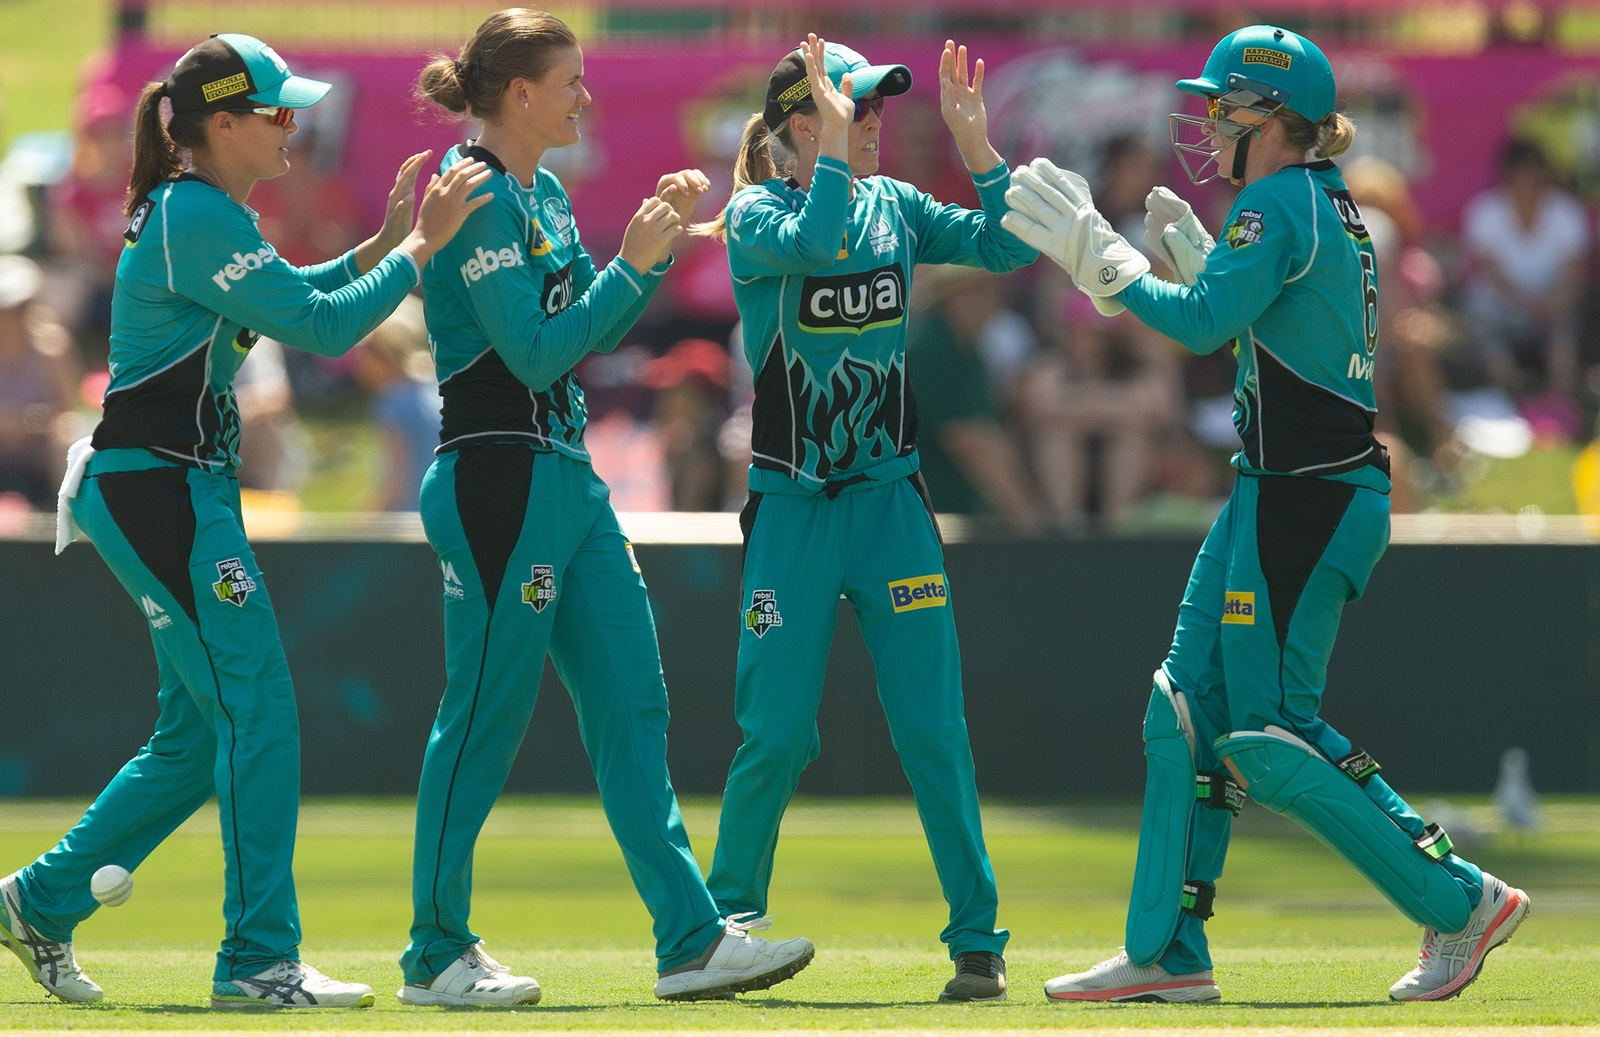 Heat topple Sixers in classic WBBL final | cricket.com.au